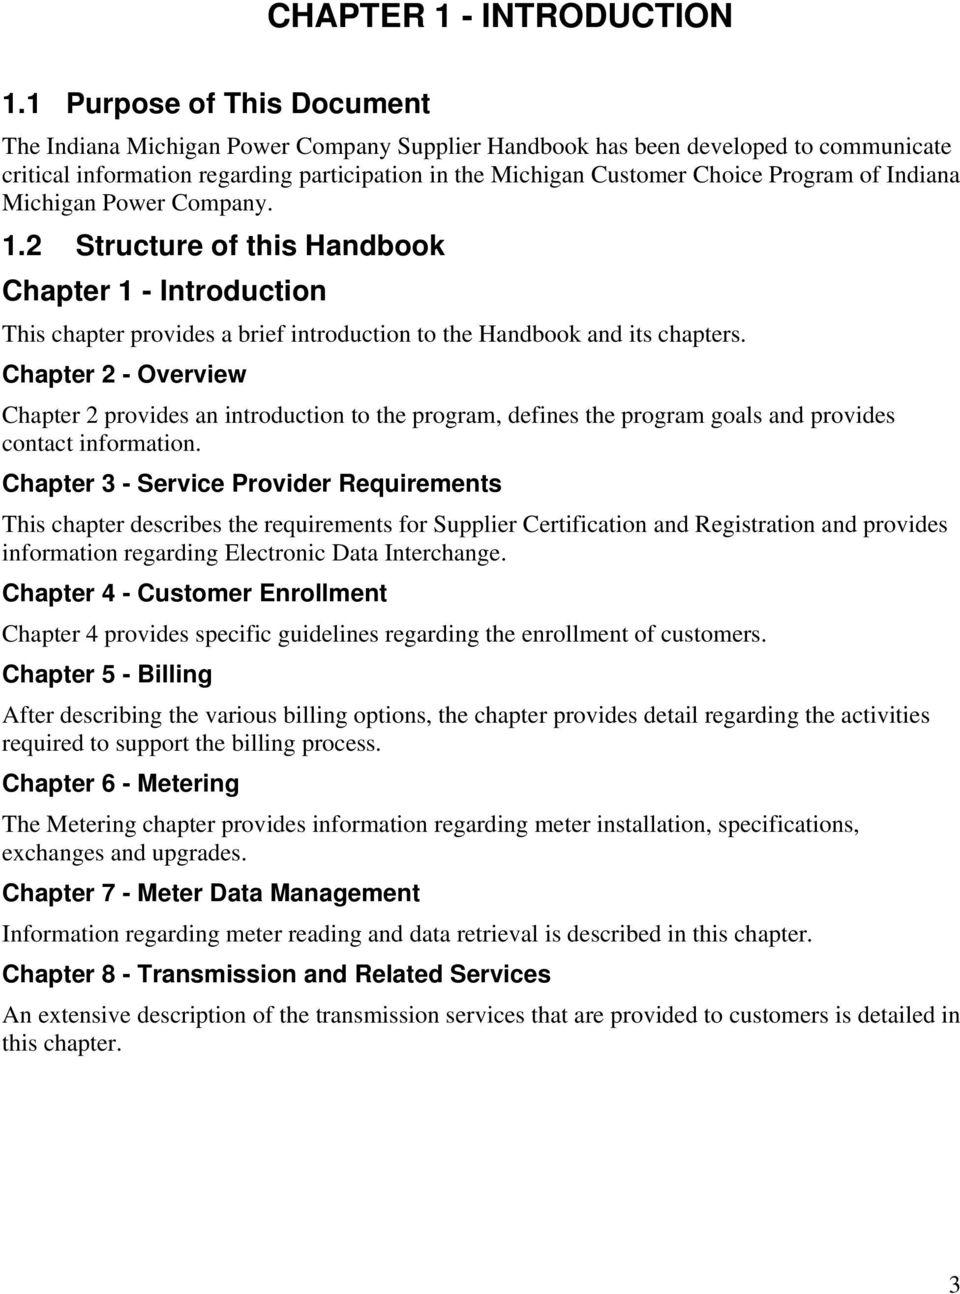 of Indiana Michigan Power Company. 1.2 Structure of this Handbook Chapter 1 - Introduction This chapter provides a brief introduction to the Handbook and its chapters.